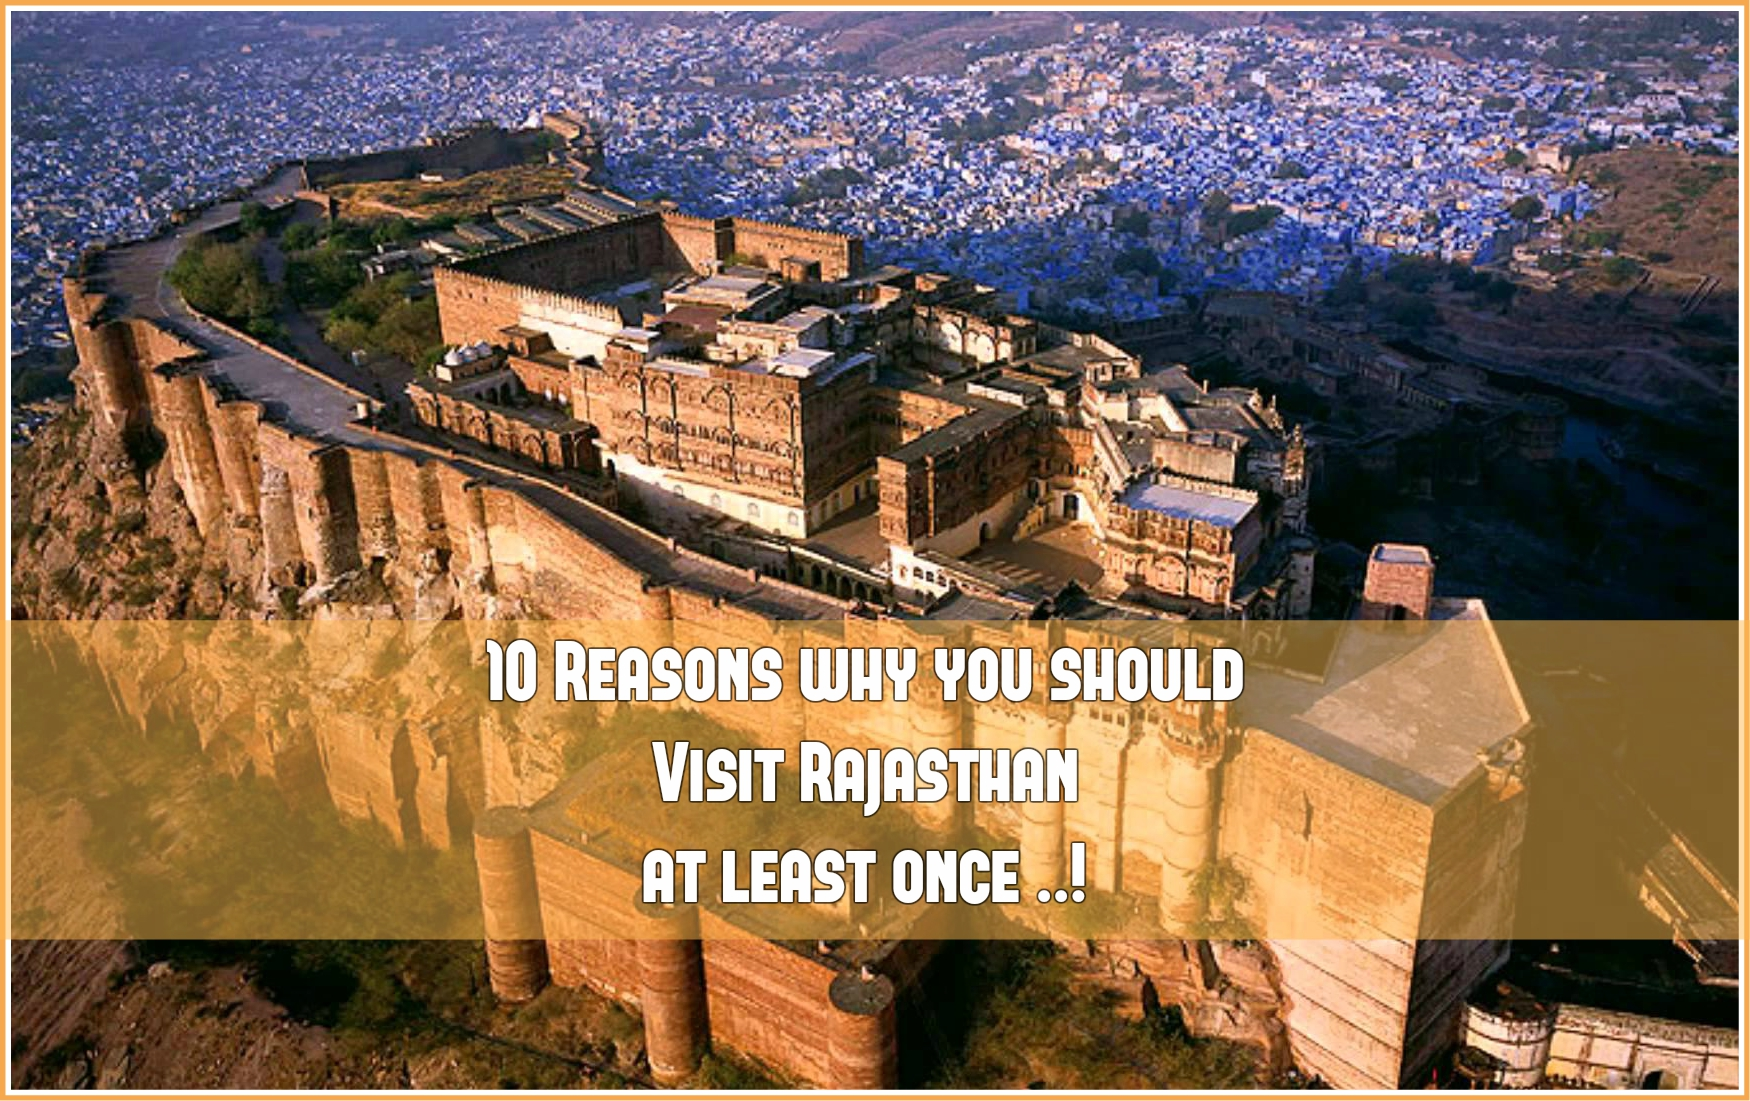 10 reason to visit Rajasthan once